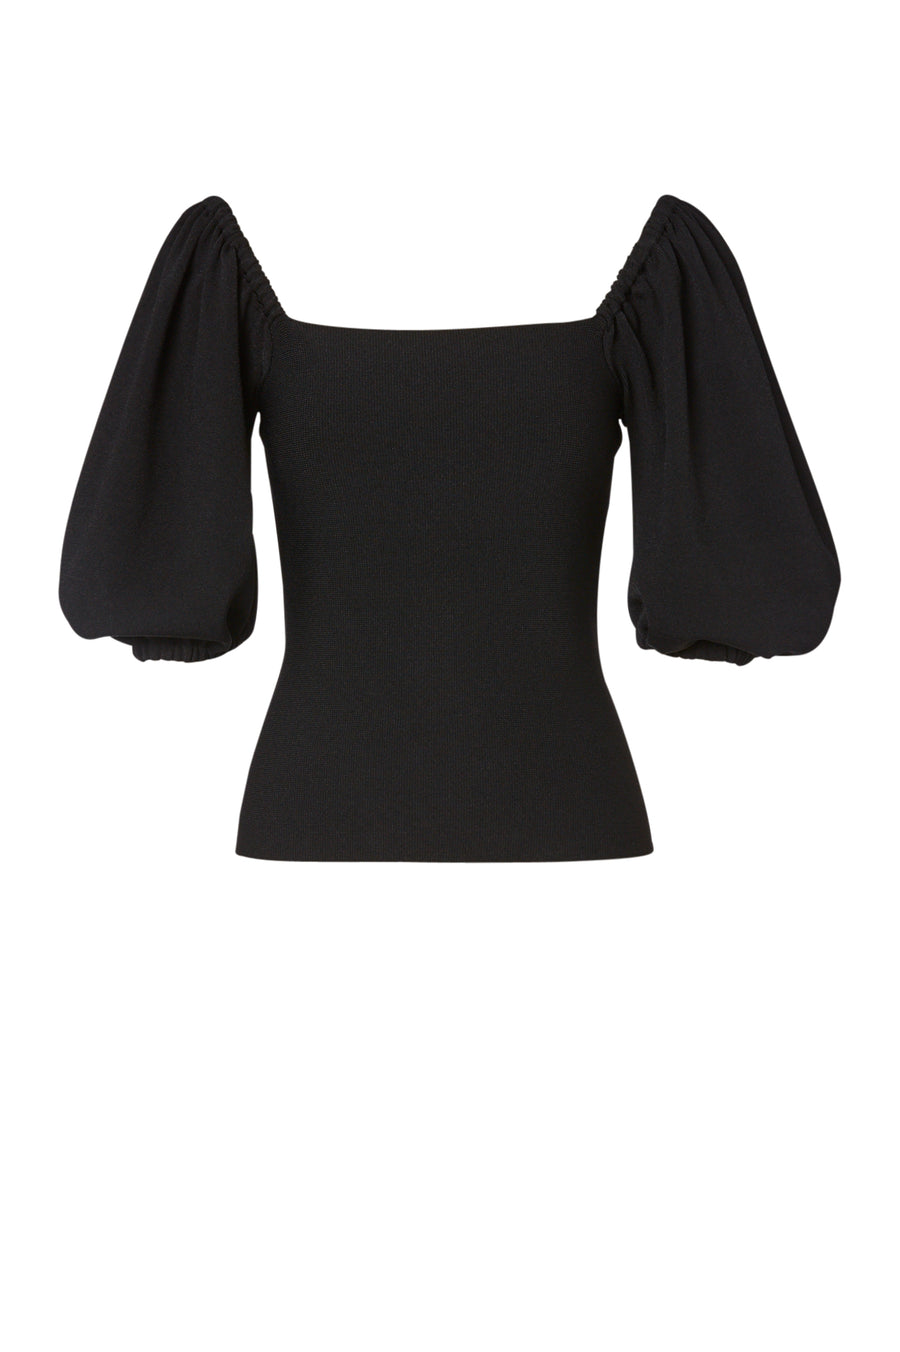 Crepe Knit Coupe Top, tailored top with a square neckline, cocoon sleeves, Color Black